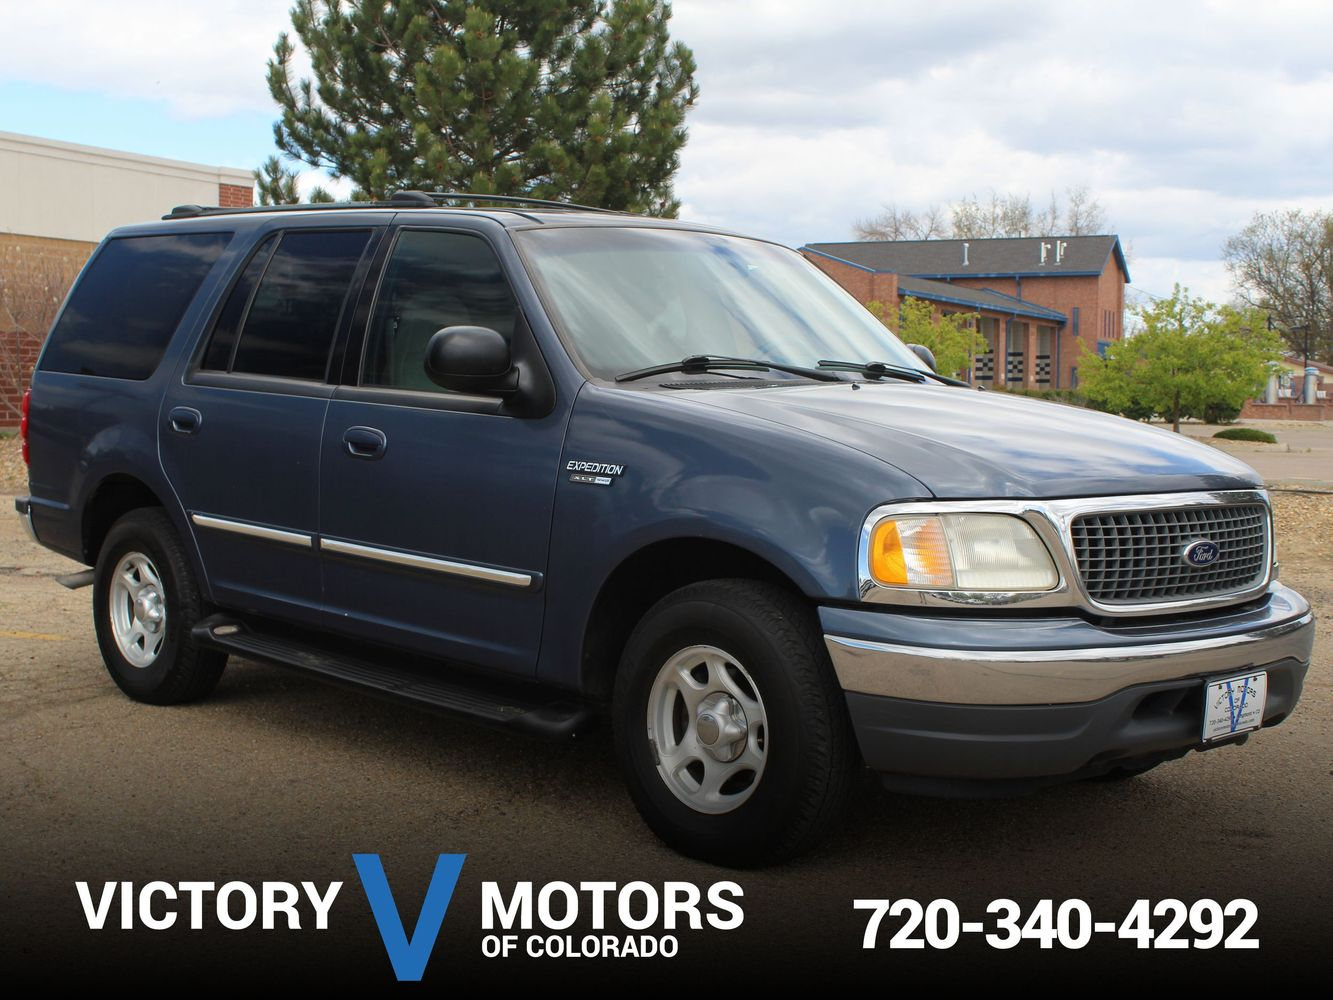 2000 ford expedition xlt victory motors of colorado. Black Bedroom Furniture Sets. Home Design Ideas